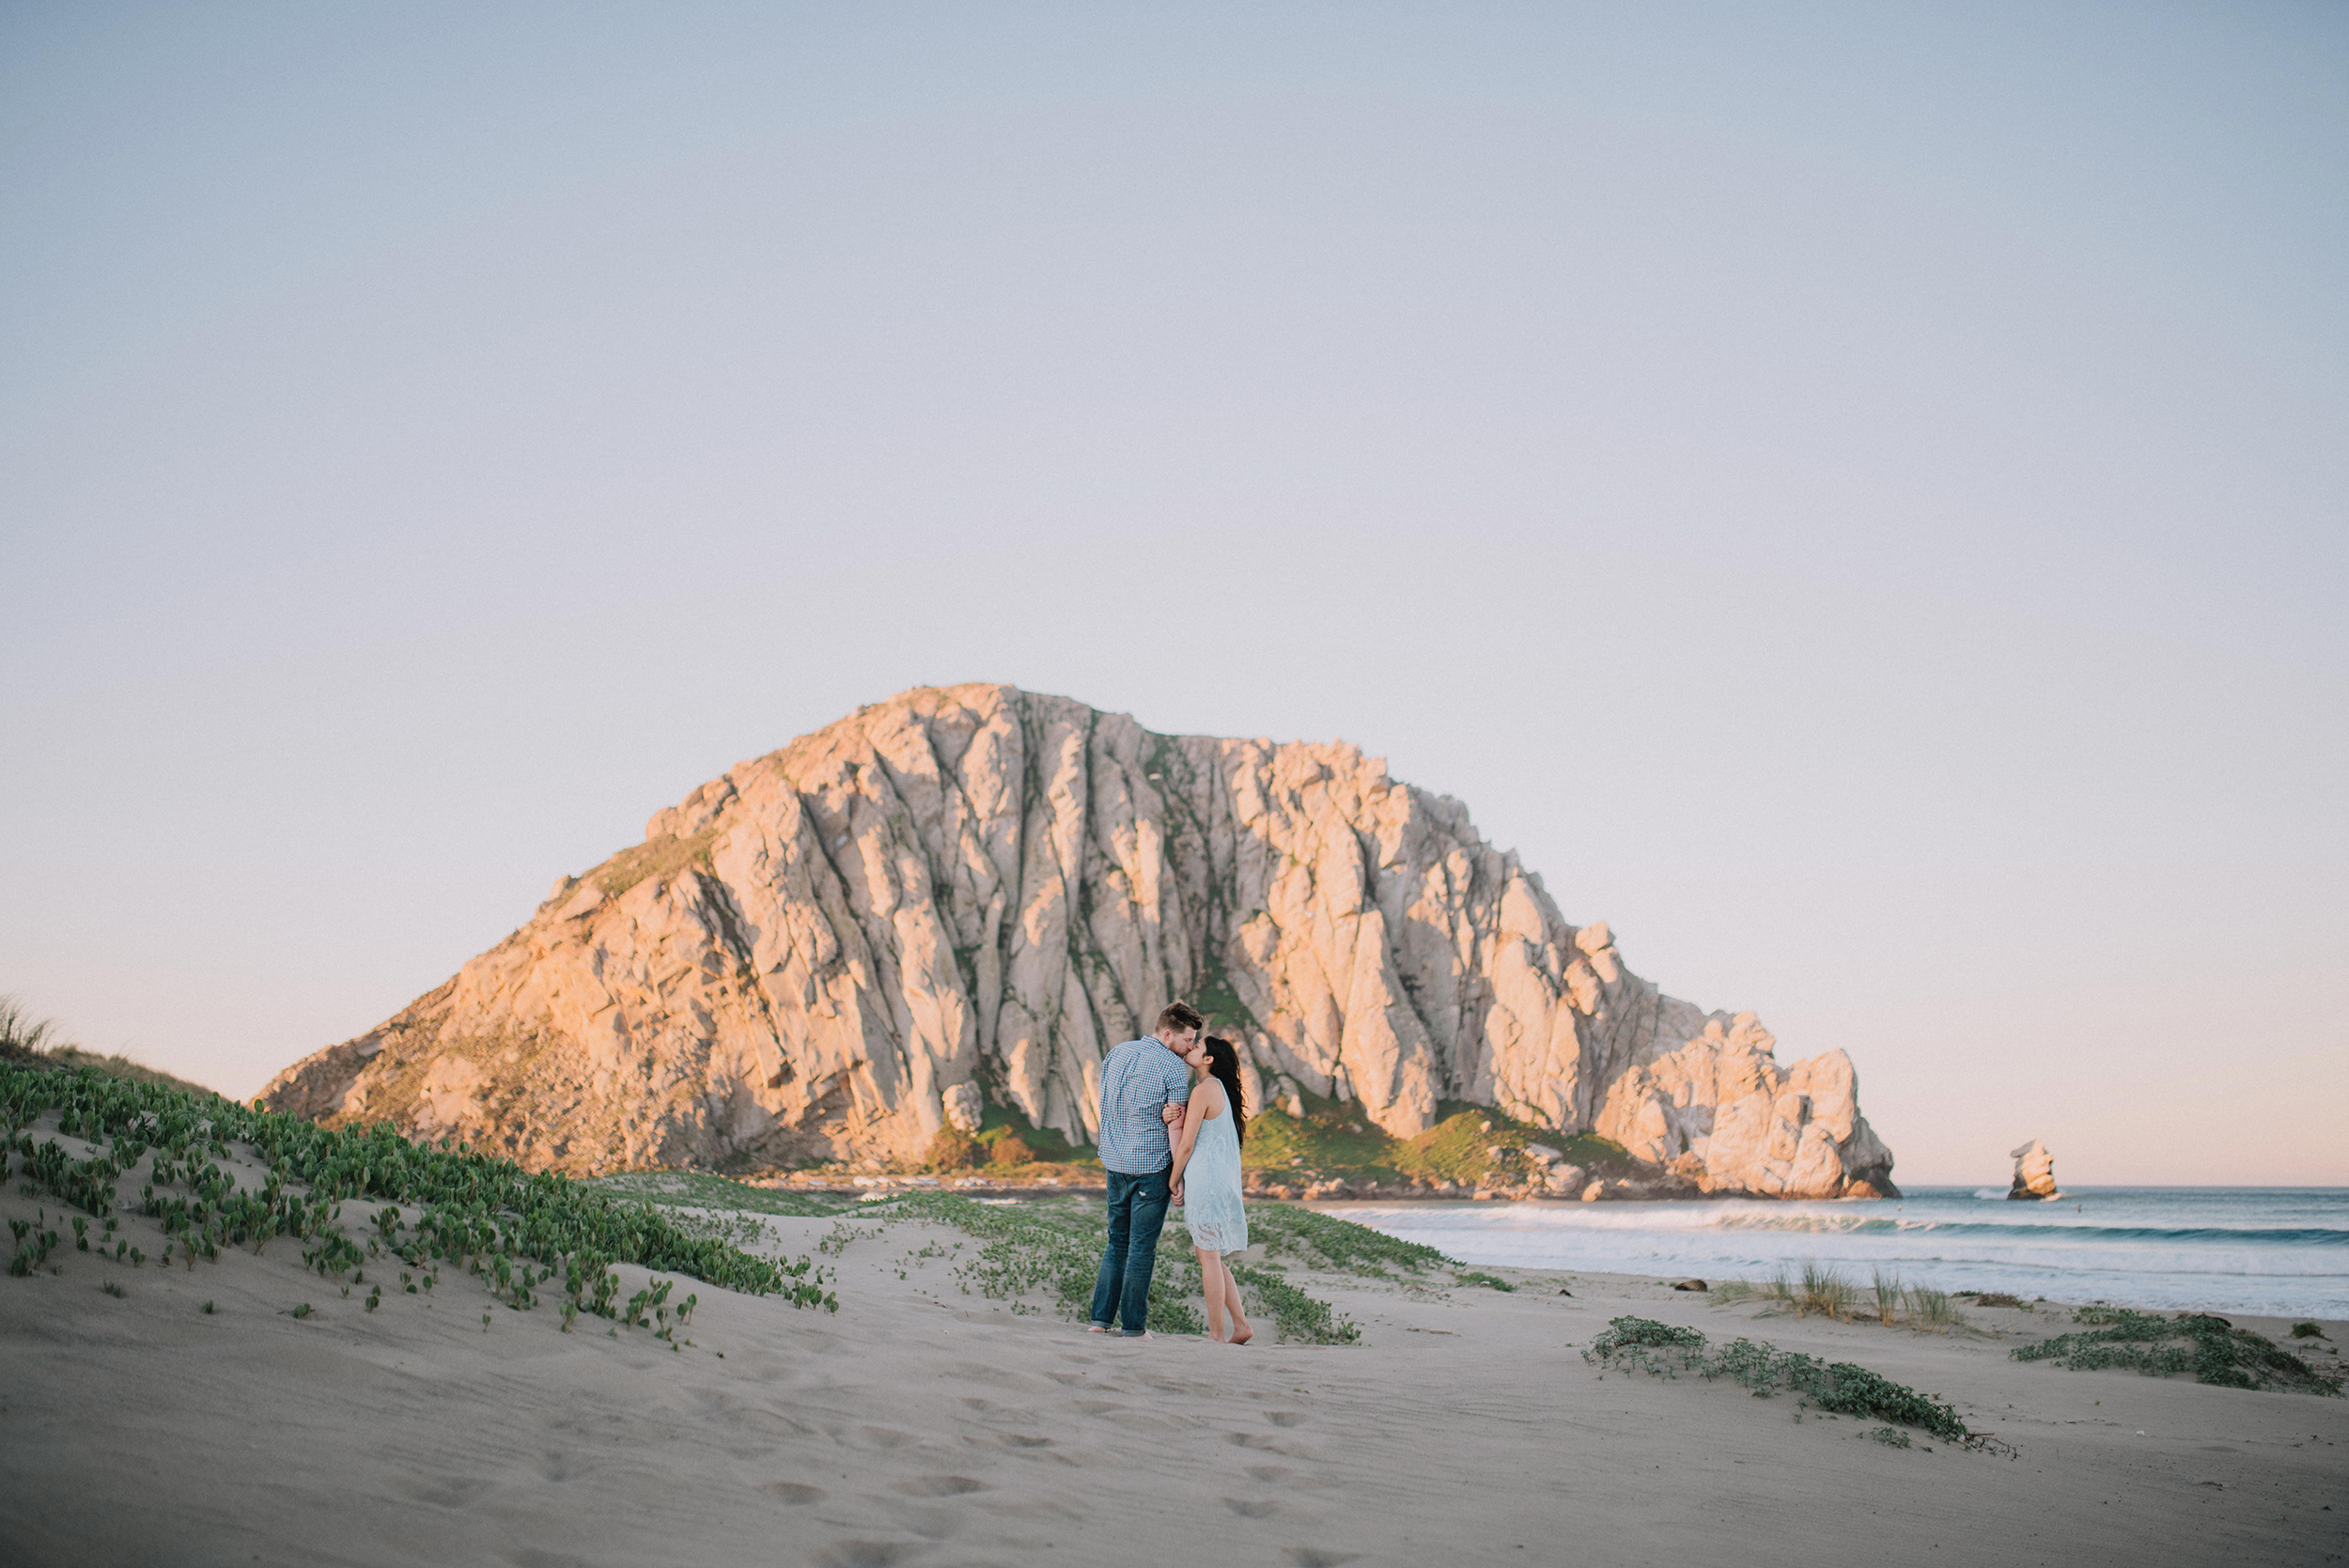 Colby-and-Jess-Adventure-Engagement-Photography-Morro-Bay-Montana-de-oro-California110.jpg